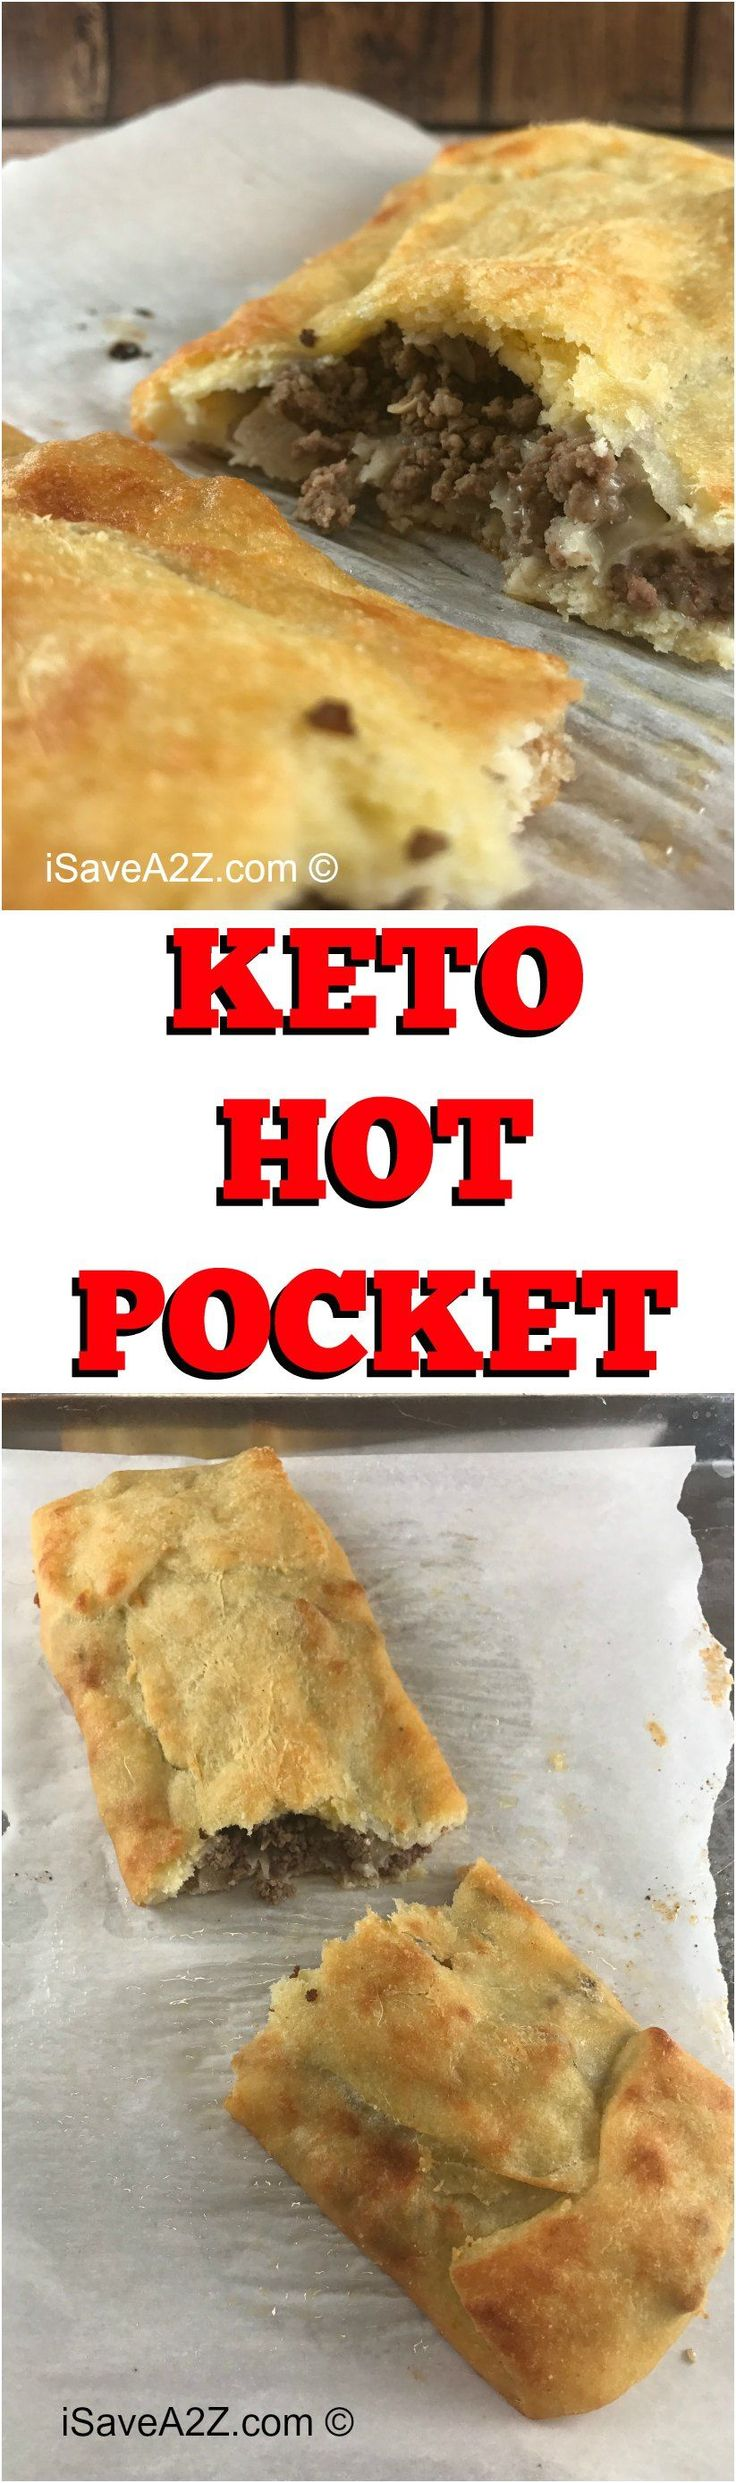 KETO HOT POCKETS!!! THIS is the dough recipe you've been craving!! via @isavea2z